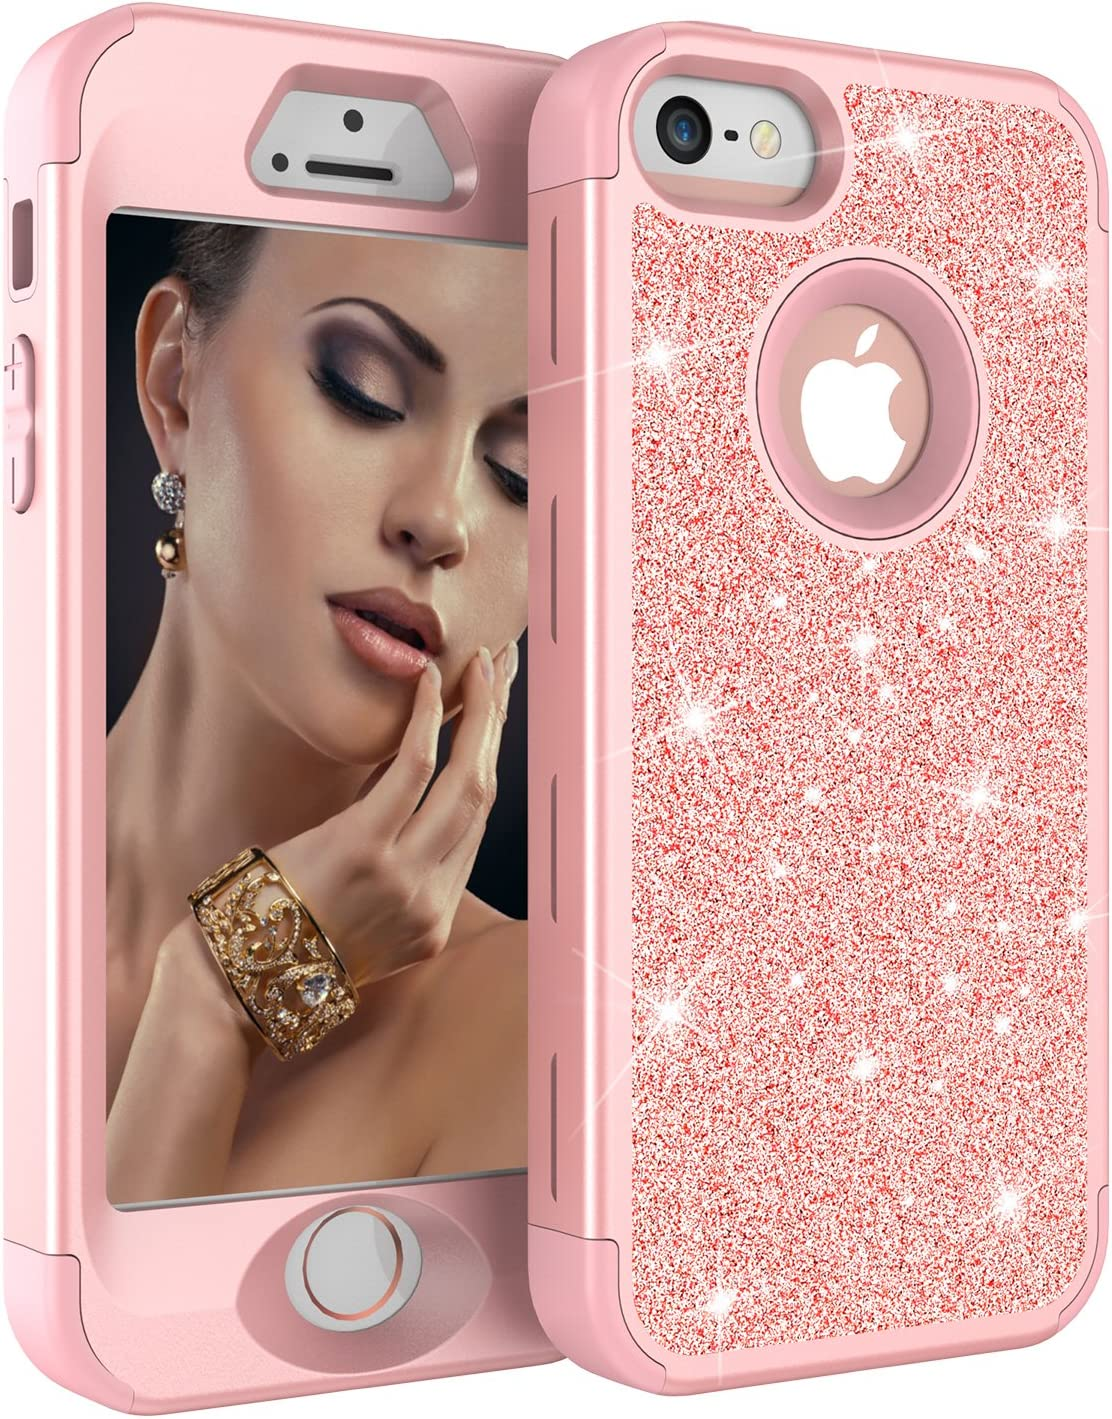 iPhone 5S Case, iPhone 5 Case,iPhone SE Case, Ankoe Luxury Glitter Sparkle Bling Shiny Heavy Duty Hybrid Sturdy Armor Defender High Impact Shockproof Cover Case for Apple iPhone 5 5S SE (Rose Gold)